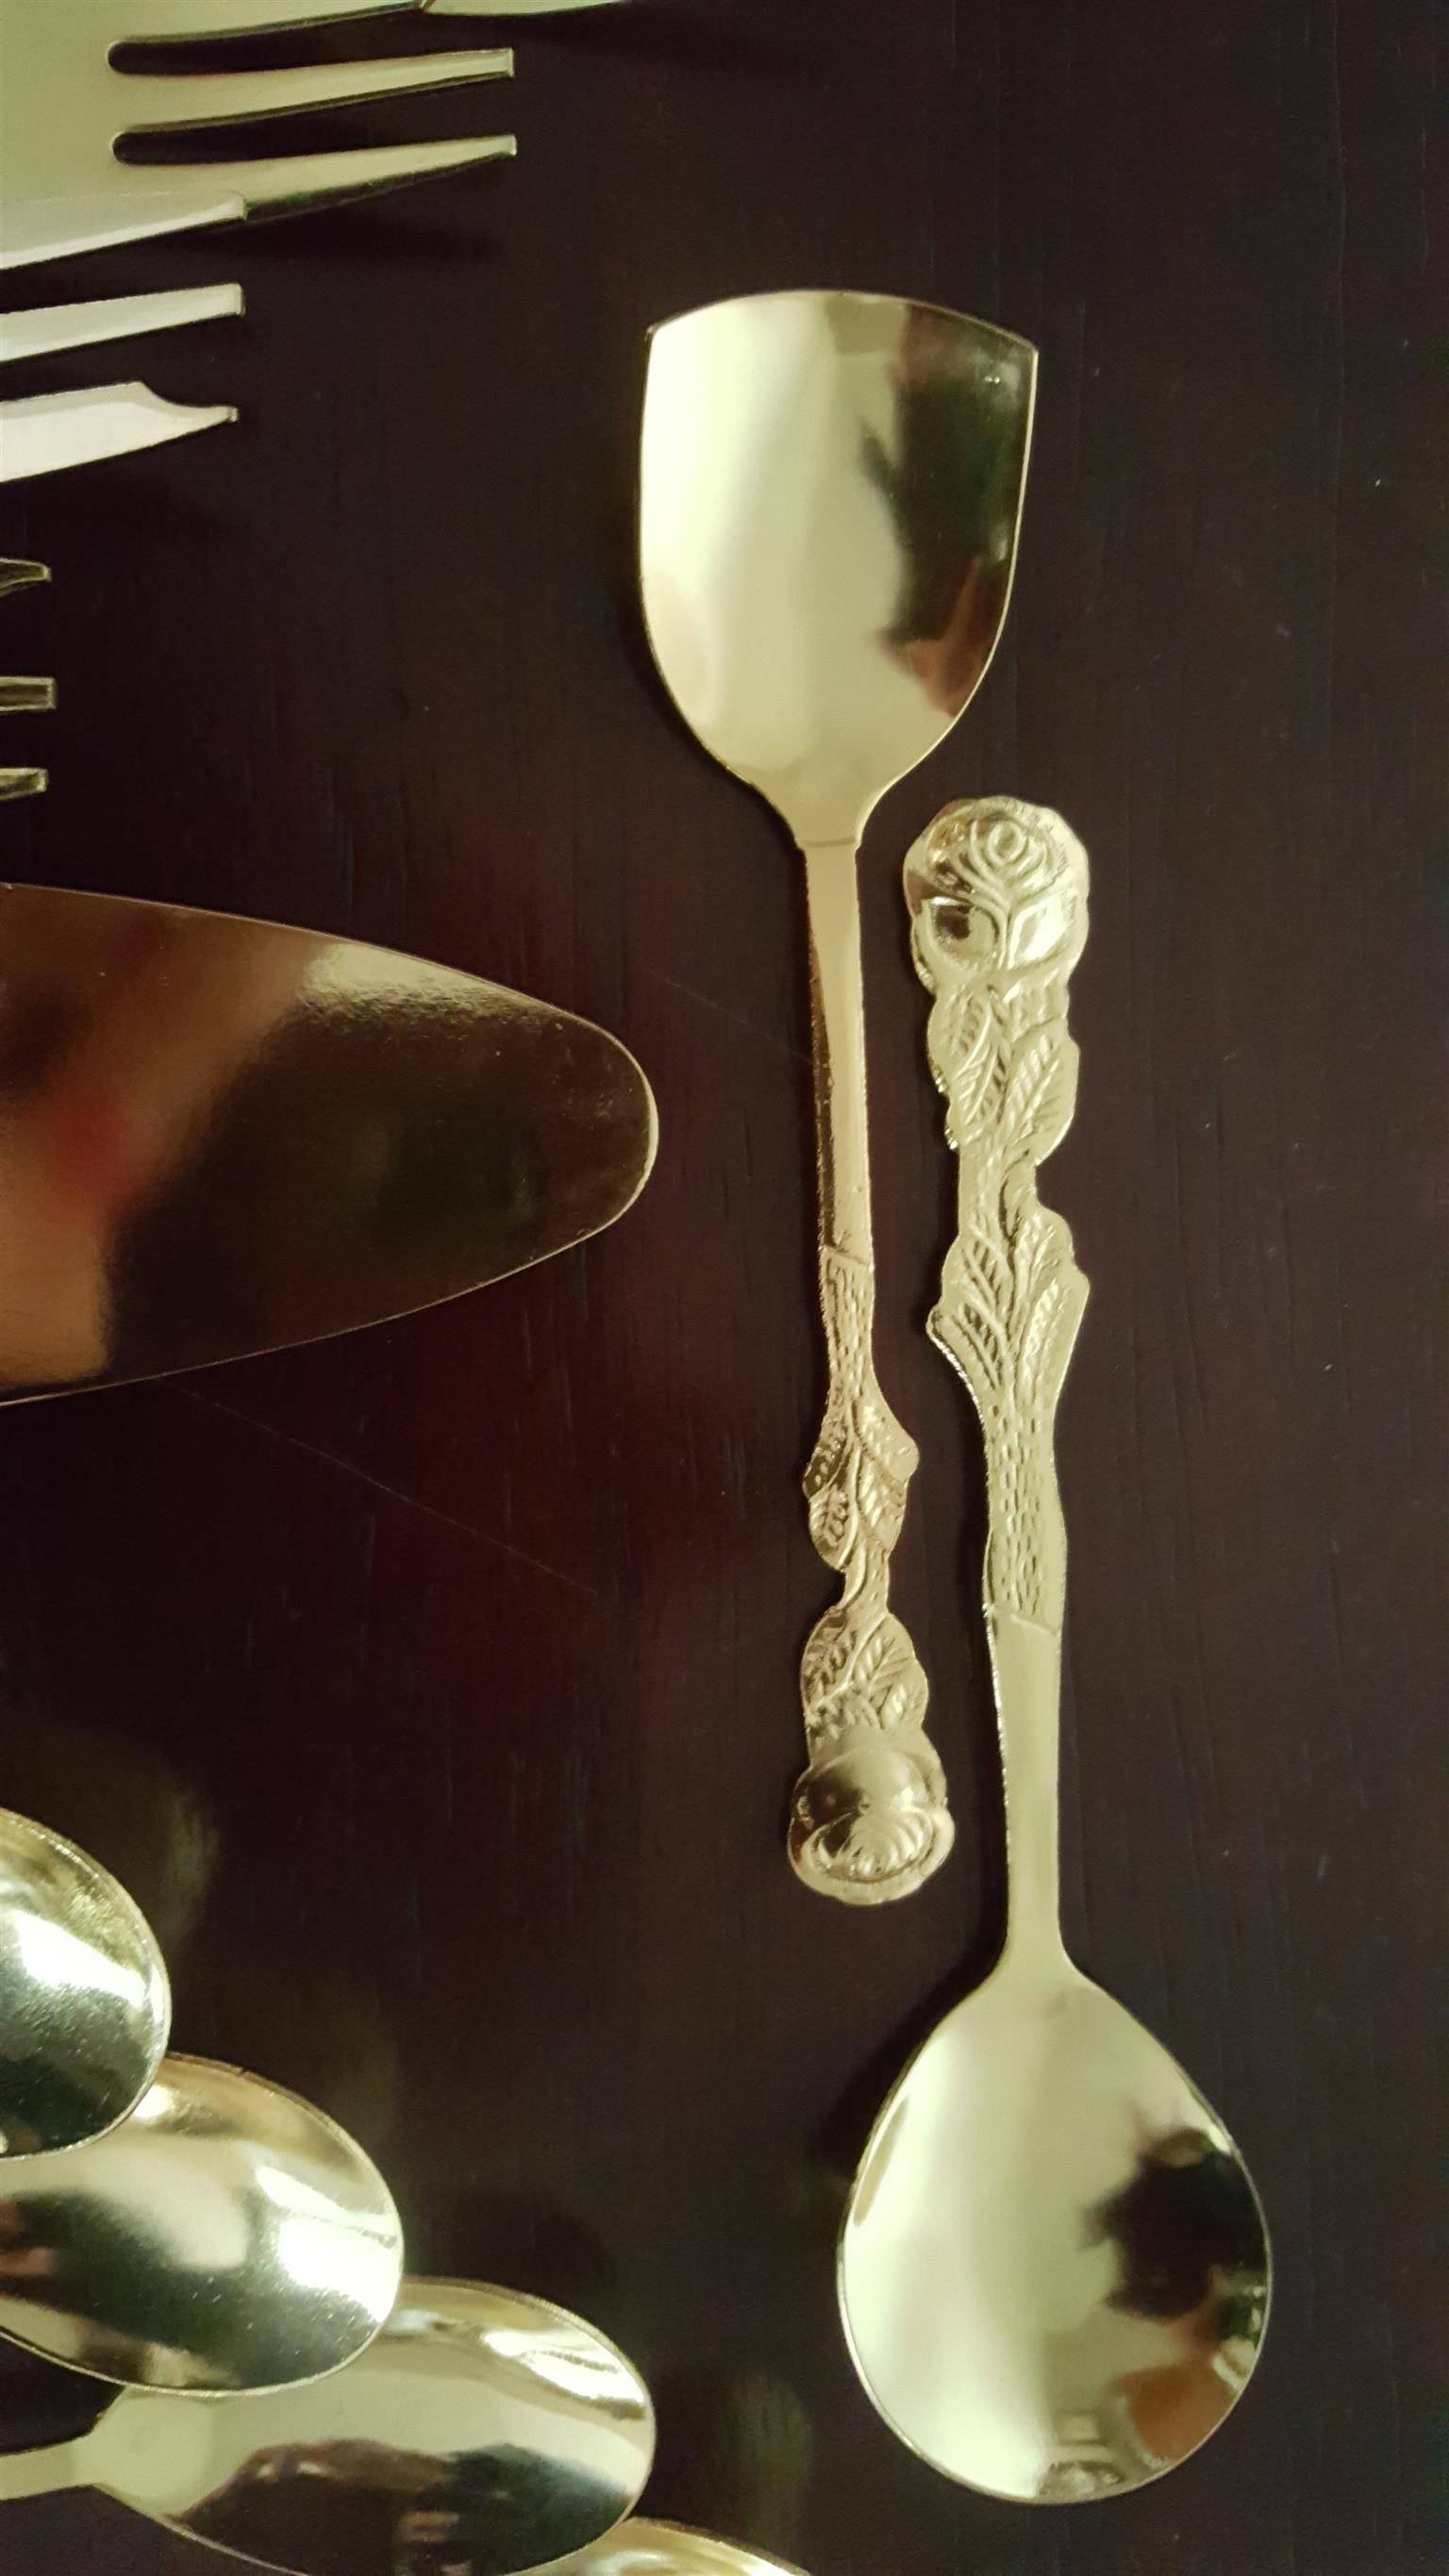 WANTED GOLD CUTLERY TEASPOONS AND CAKE FORKS EETRITE